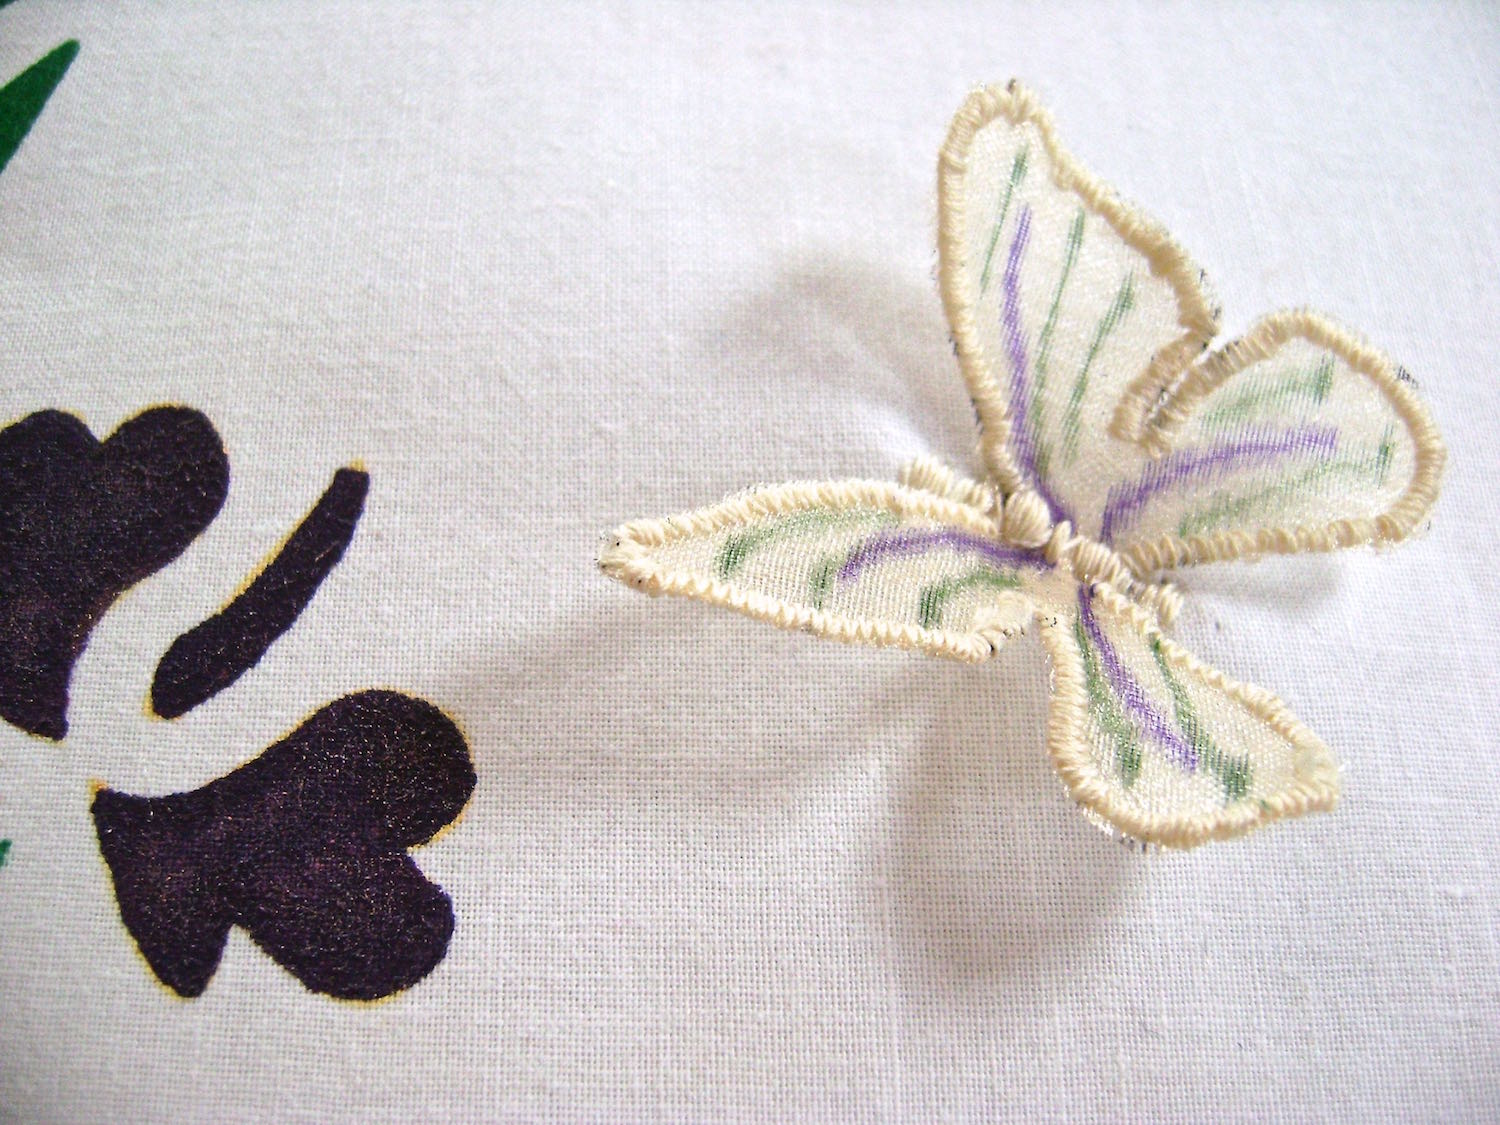 step 19 - With sharp scissors, cut away organza outside stitching line and position the butterfly wings on the pillow front. Sew down the center of the butterfly with the same zigzag stitch you used for the wings, to create the butterfly body.